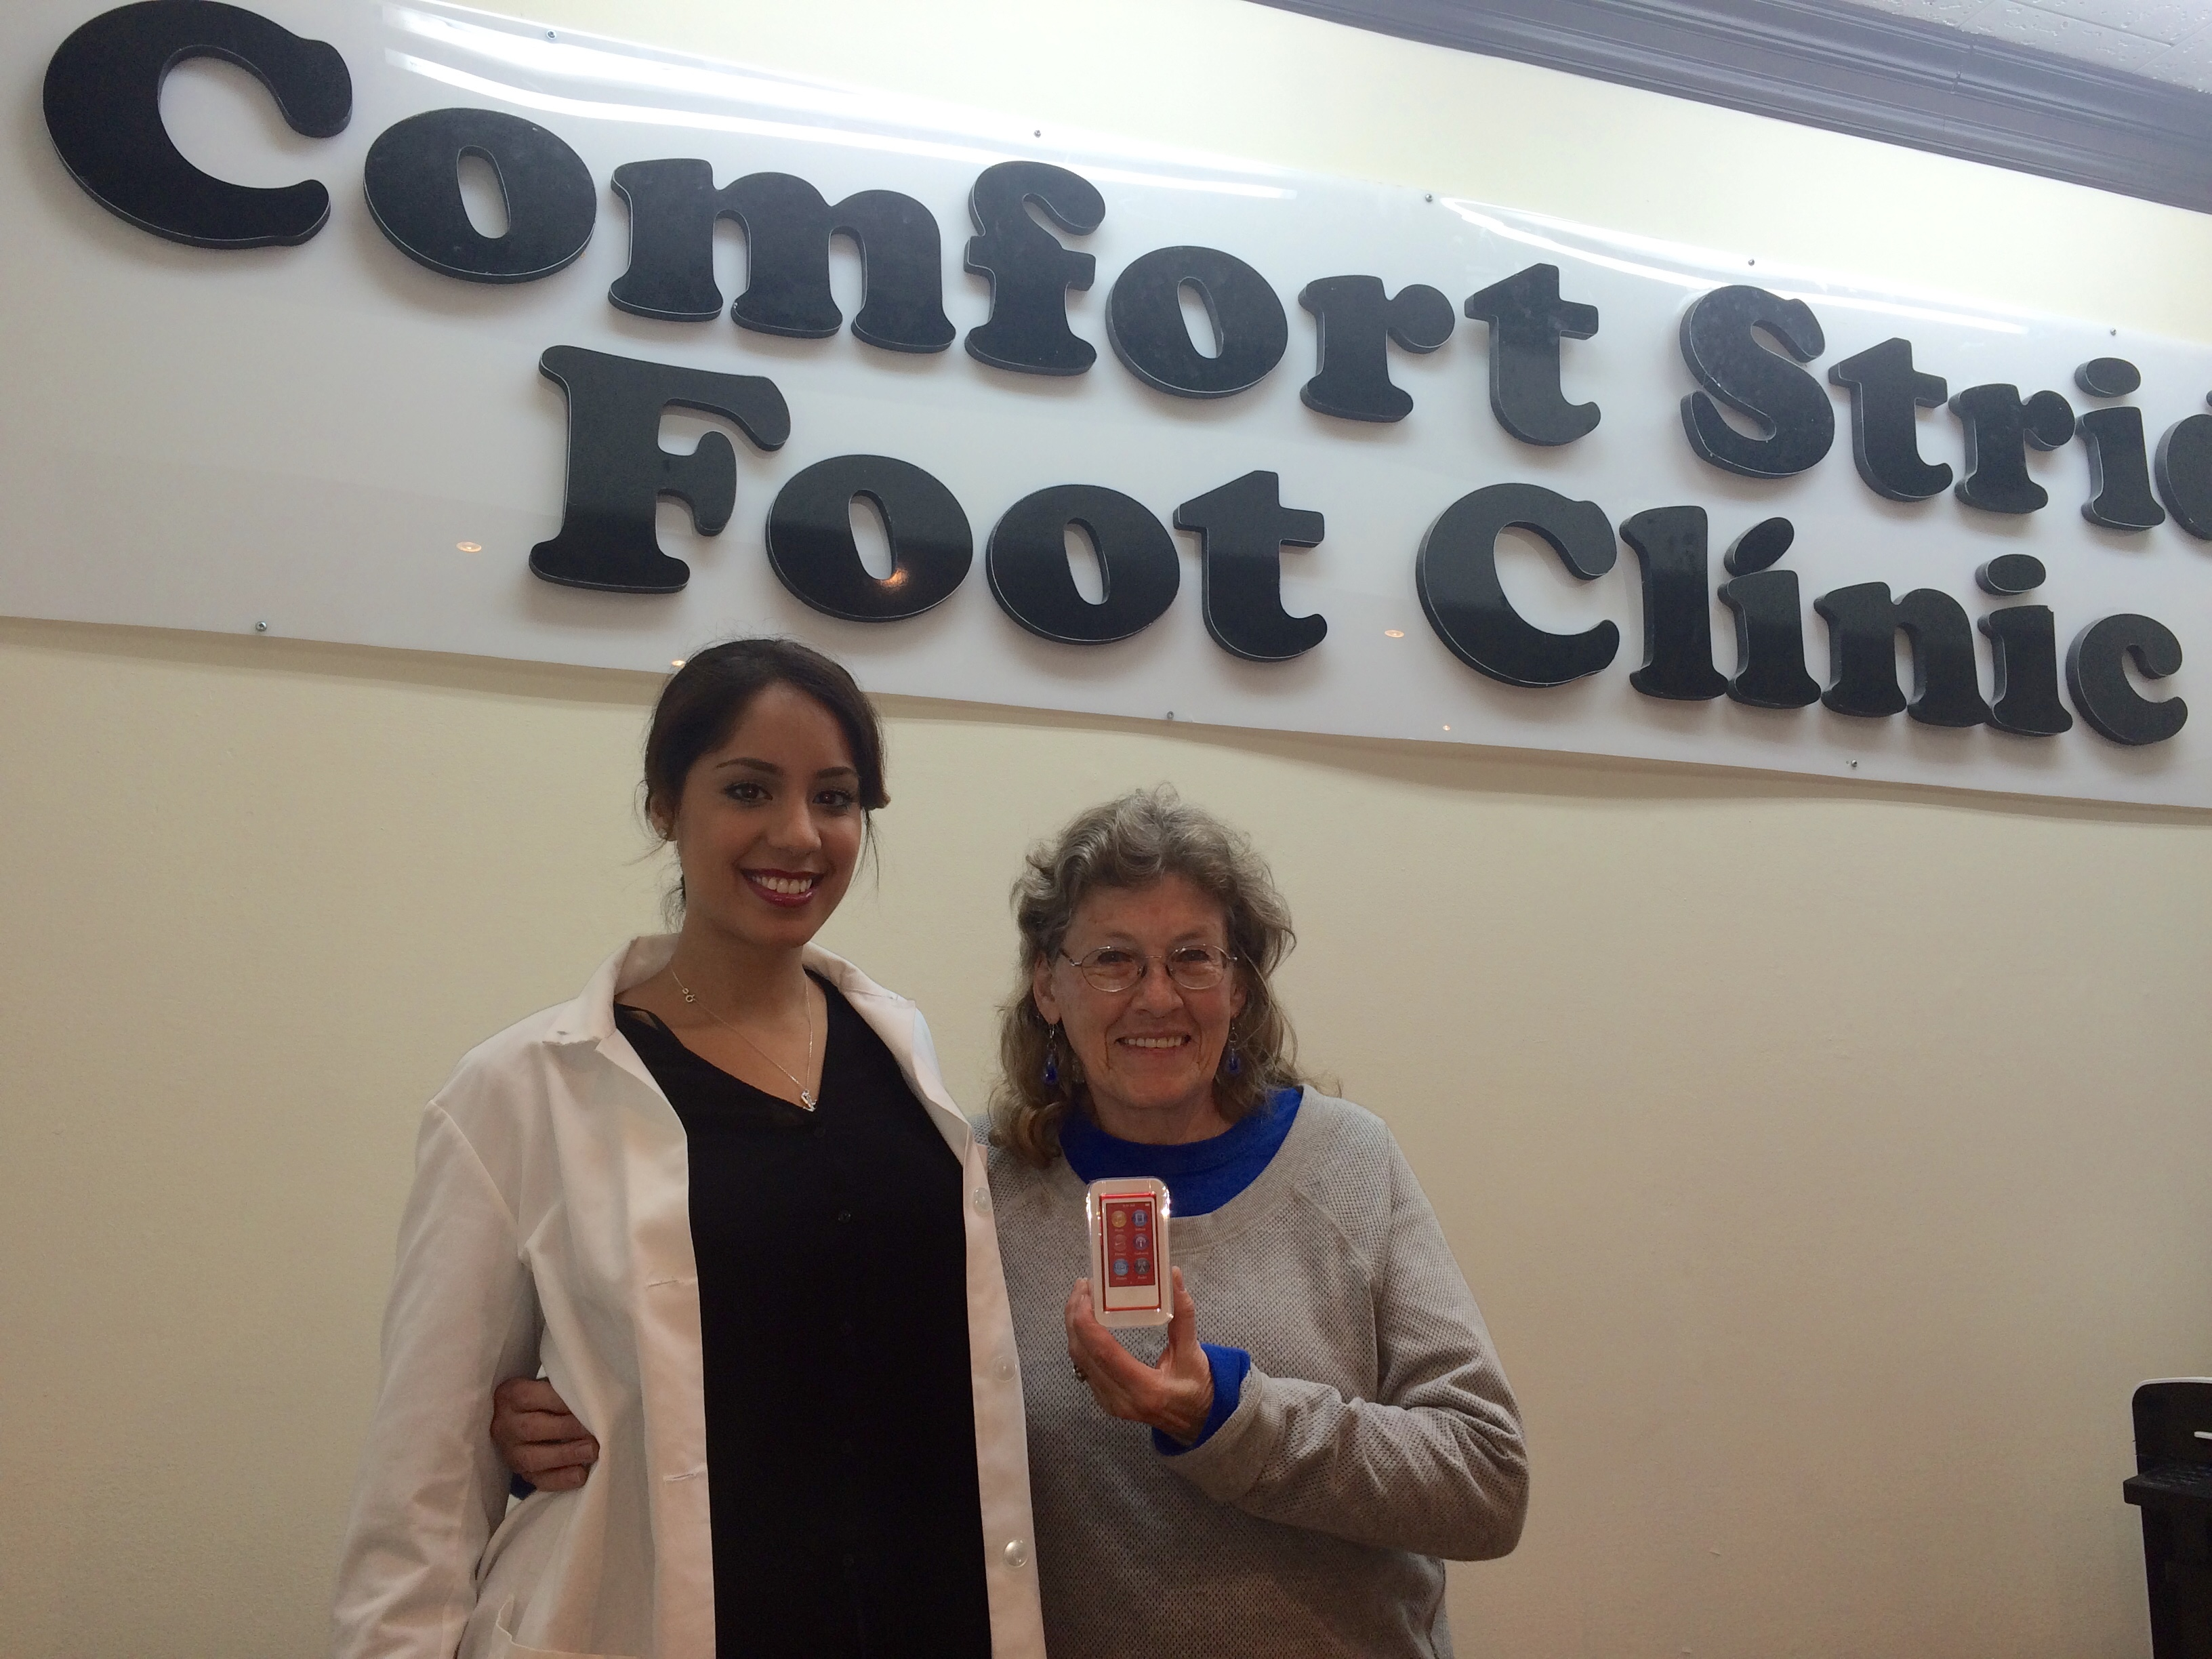 Comfort Stride: Foot Care Clinic